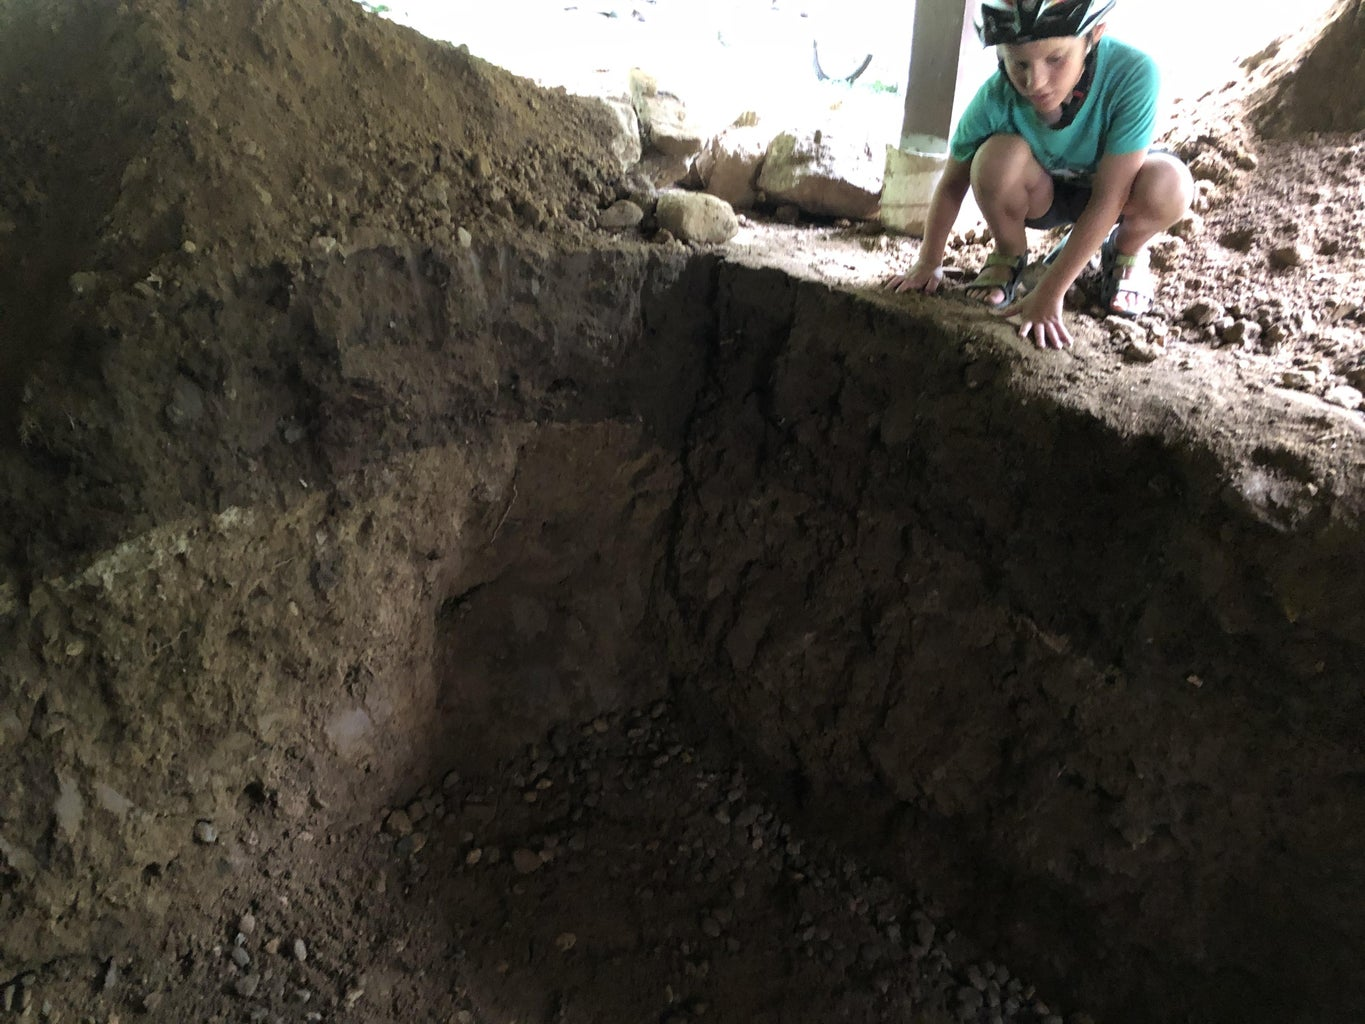 Digging the Root Cellar Hole